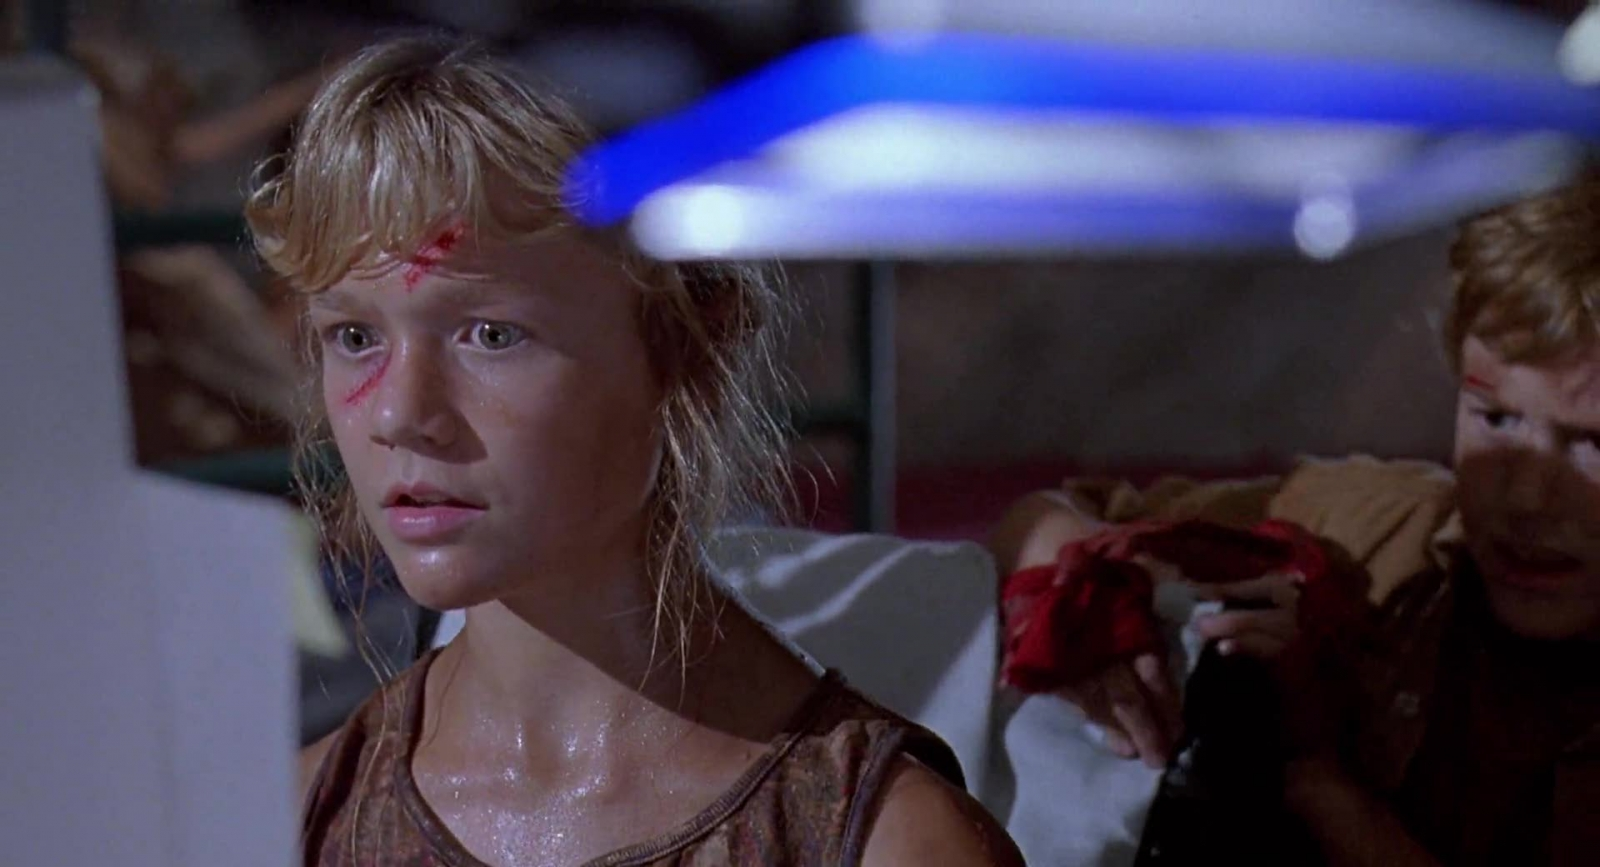 """The """"I Know This!"""" scene in Jurassic Park, when Lex saves the day by hacking into a Unix system in under two minutes"""